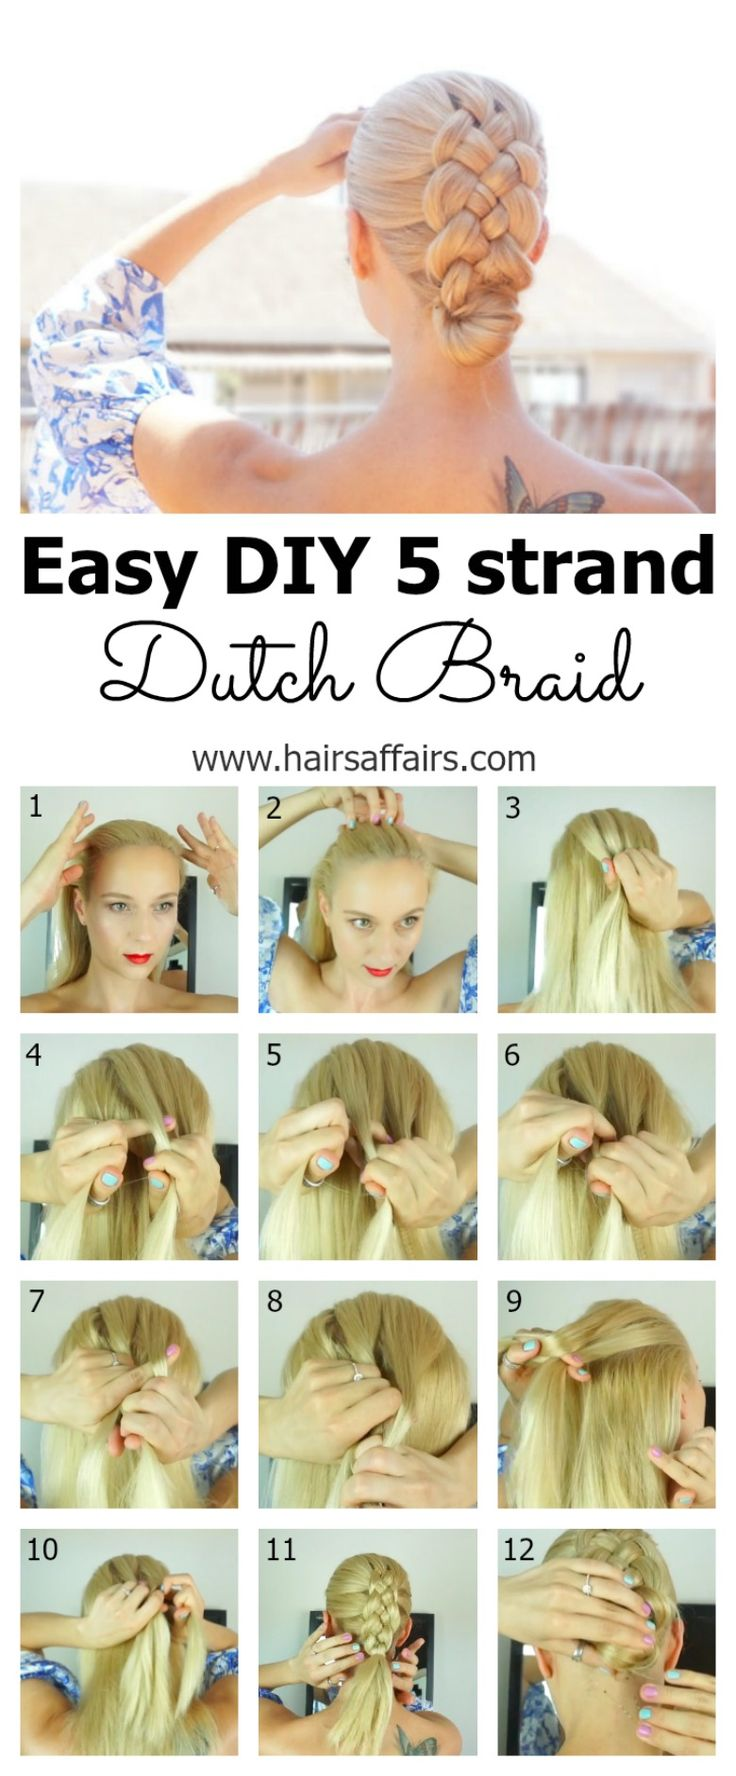 FIVE STRAND DUTCH BRAID MADE EASY – DIY TUTORIAL https://hairsaffairs.com/five-strand-dutch-braid-made-easy/